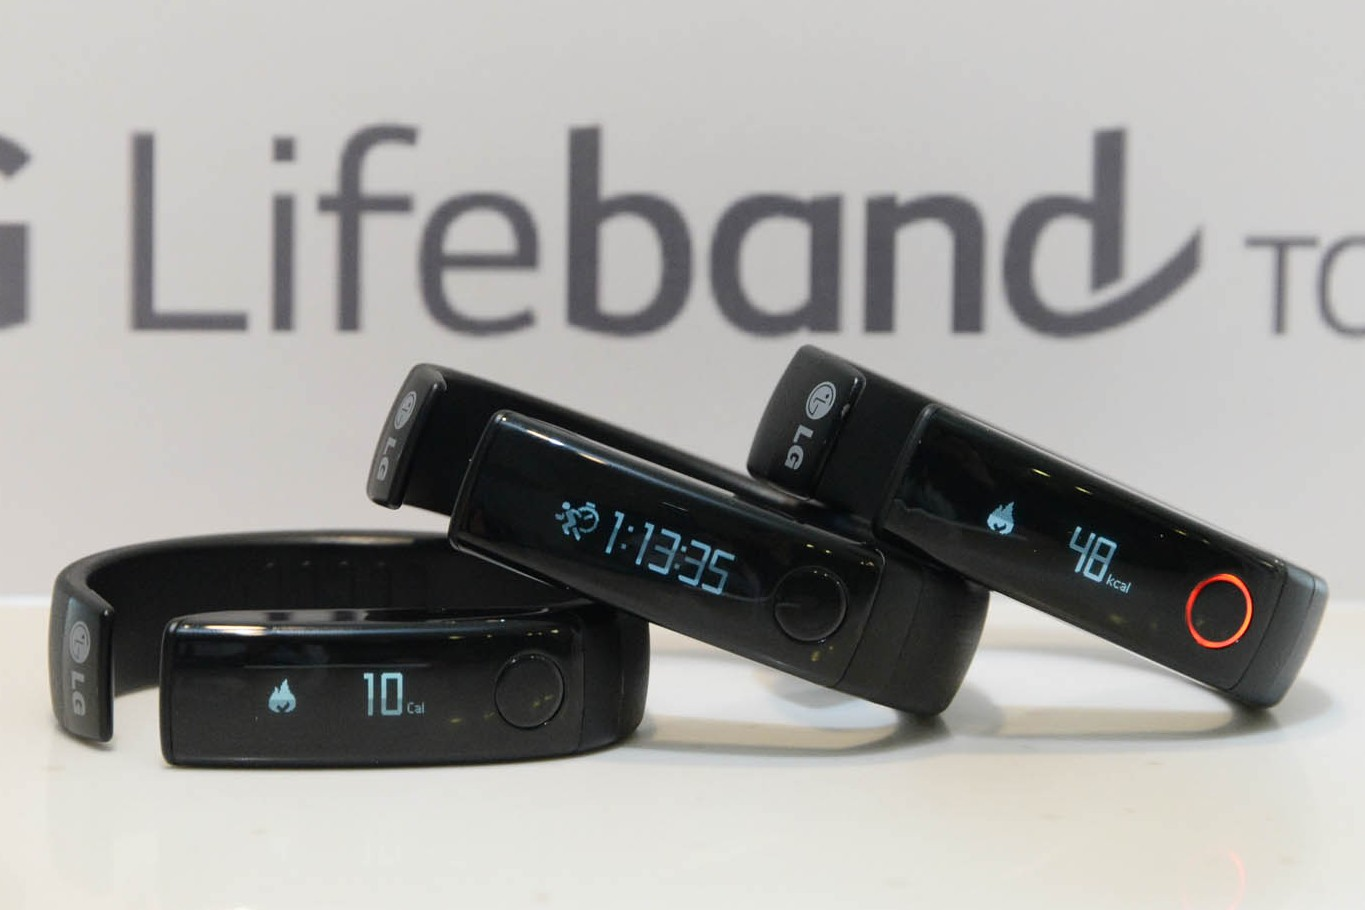 LG Lifeband Touch featured